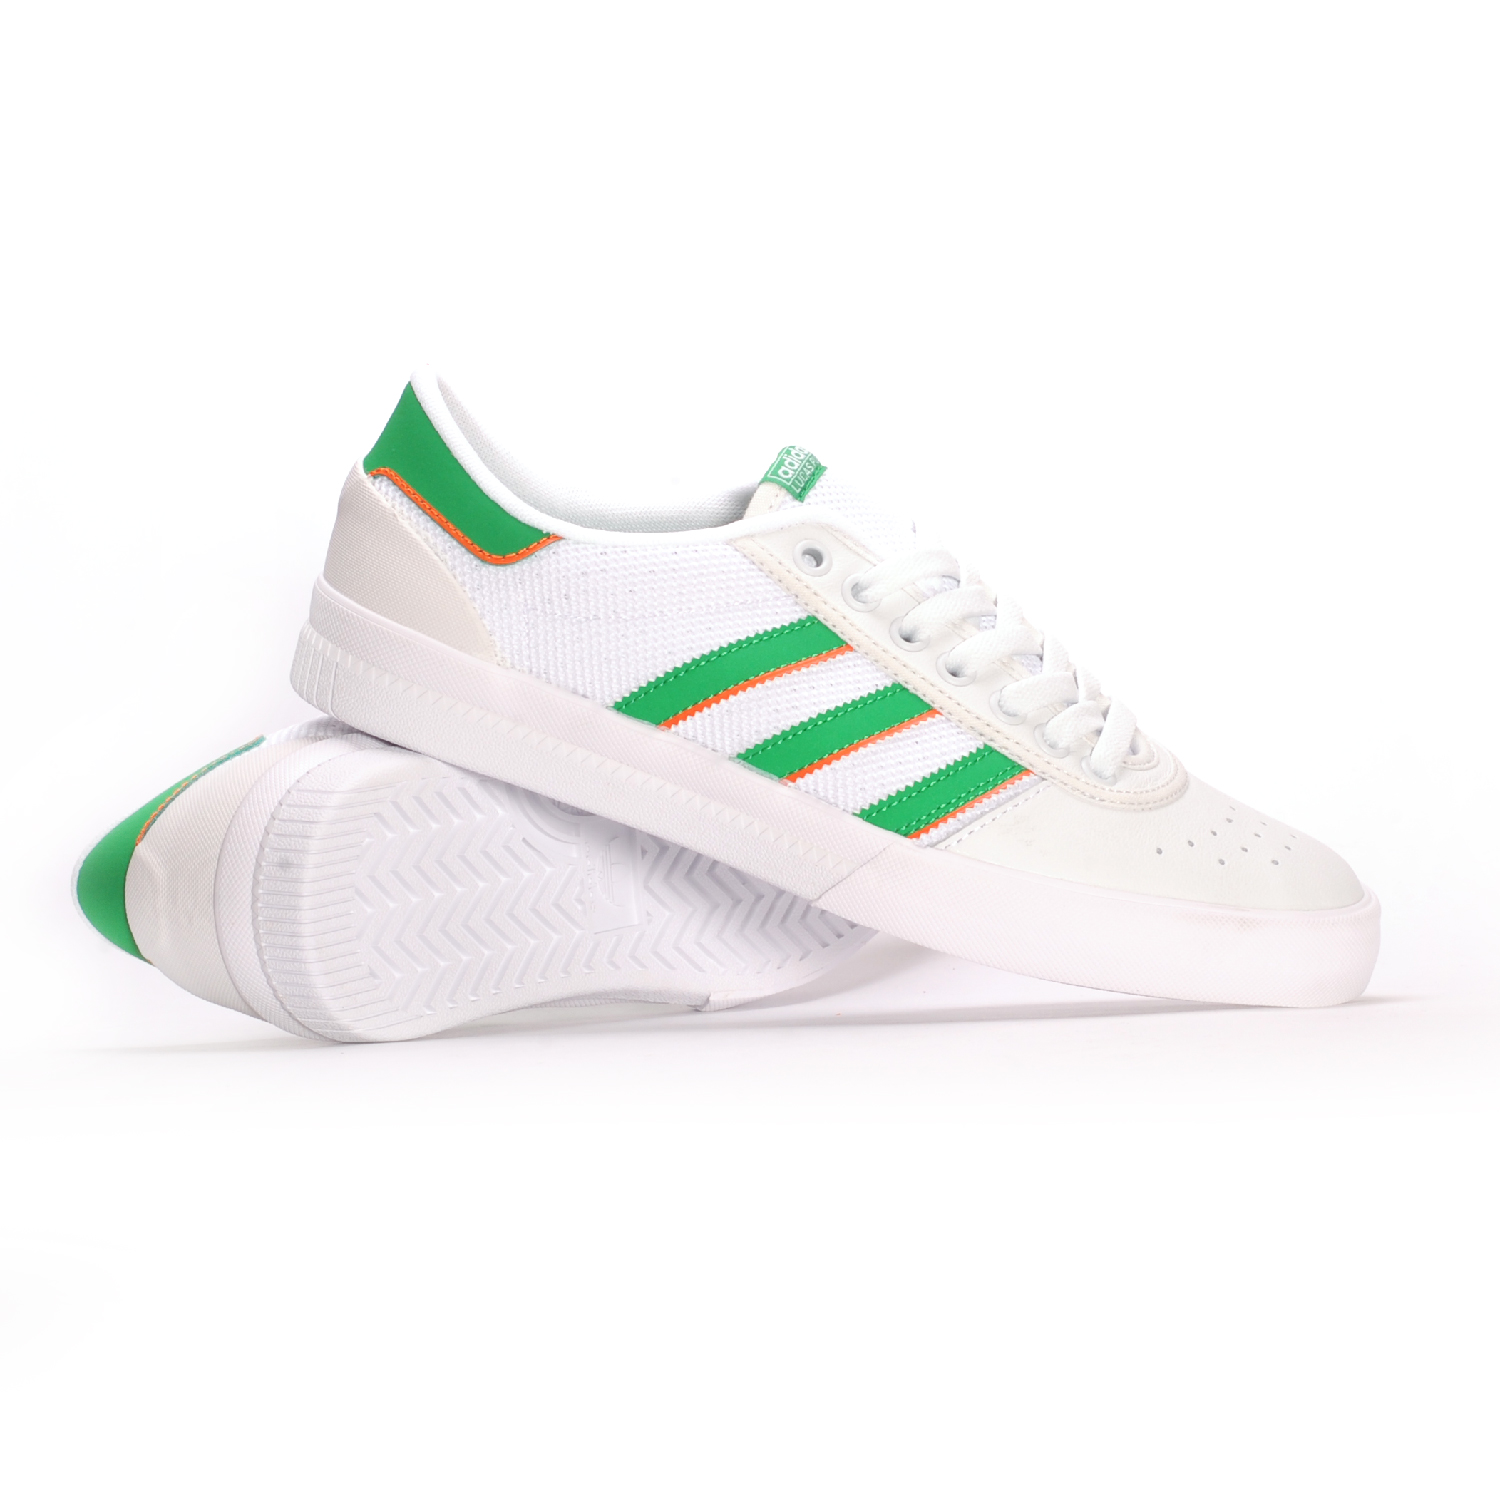 c2cd6474b7 Adidas Lucas Premiere ADV (White Green White) Men s Skate Shoes